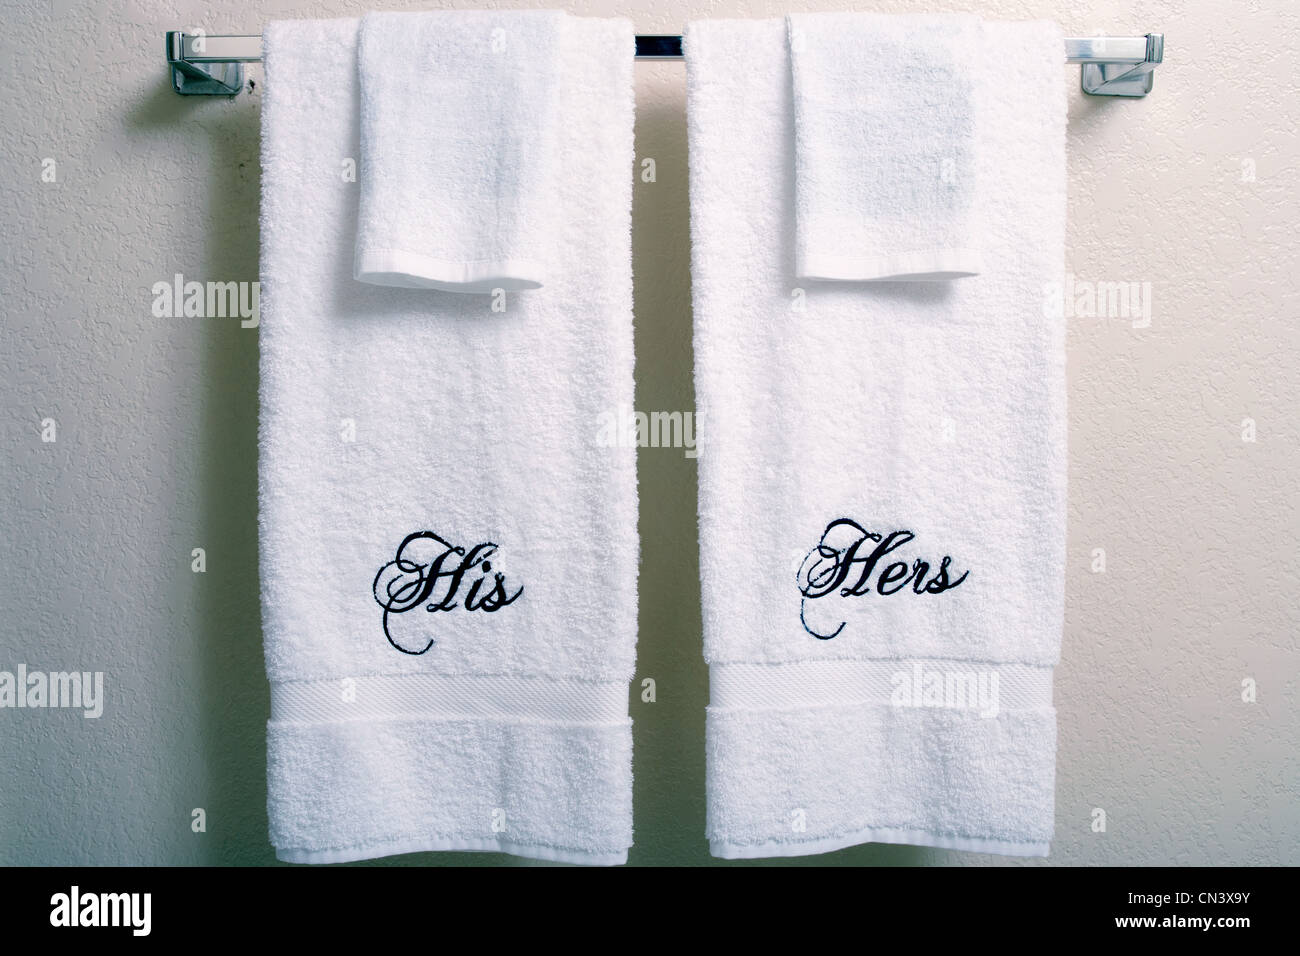 His and hers matching towels Stock Photo